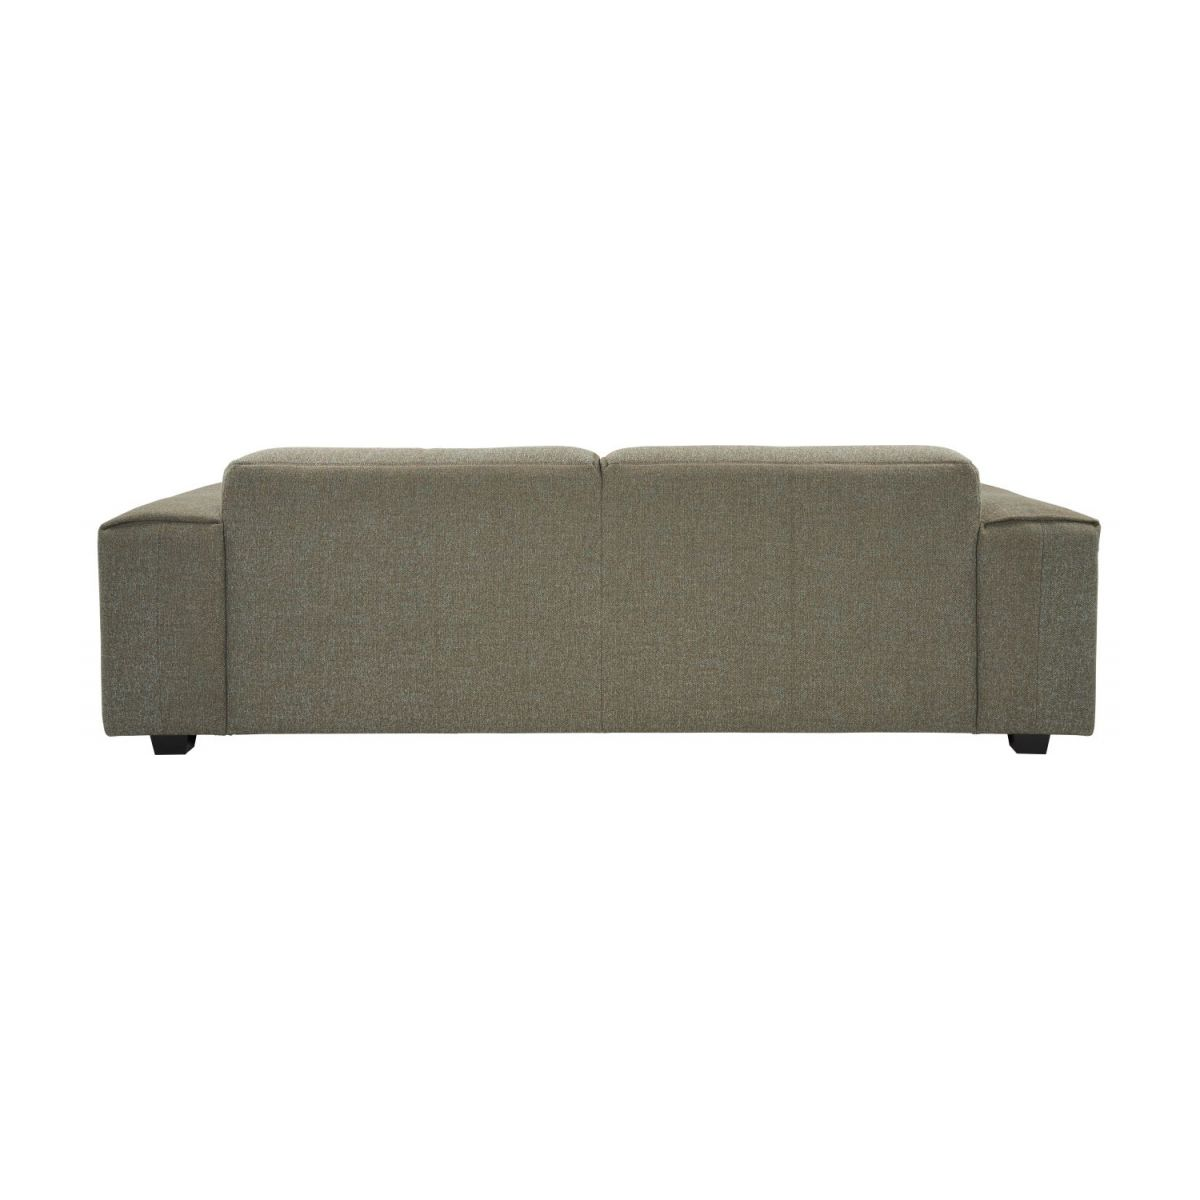 4 seater sofa in Lecce fabric, slade grey n°3